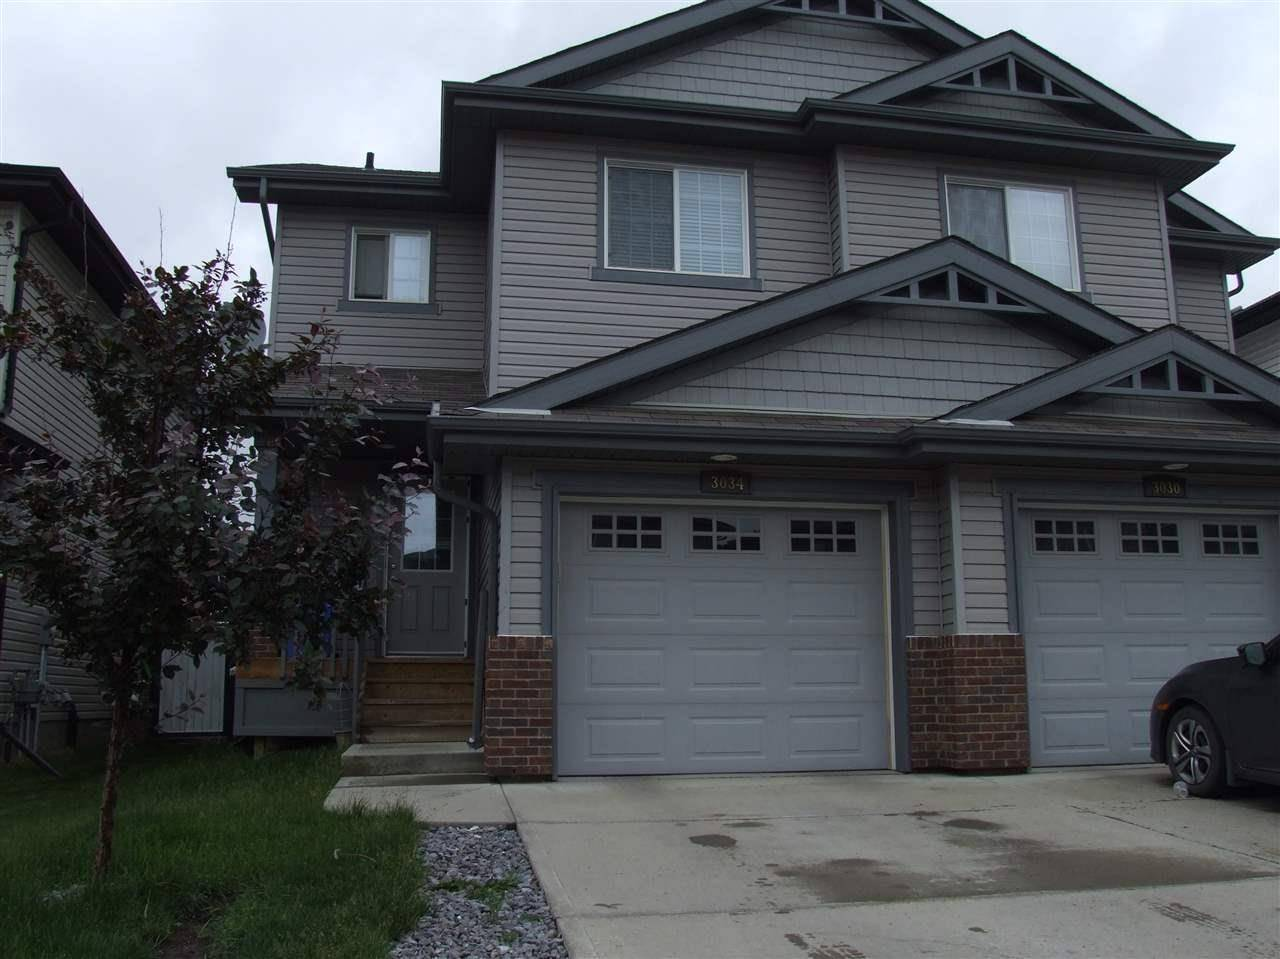 Townhouse for sale at 3034 16a Ave Nw Edmonton Alberta - MLS: E4164011